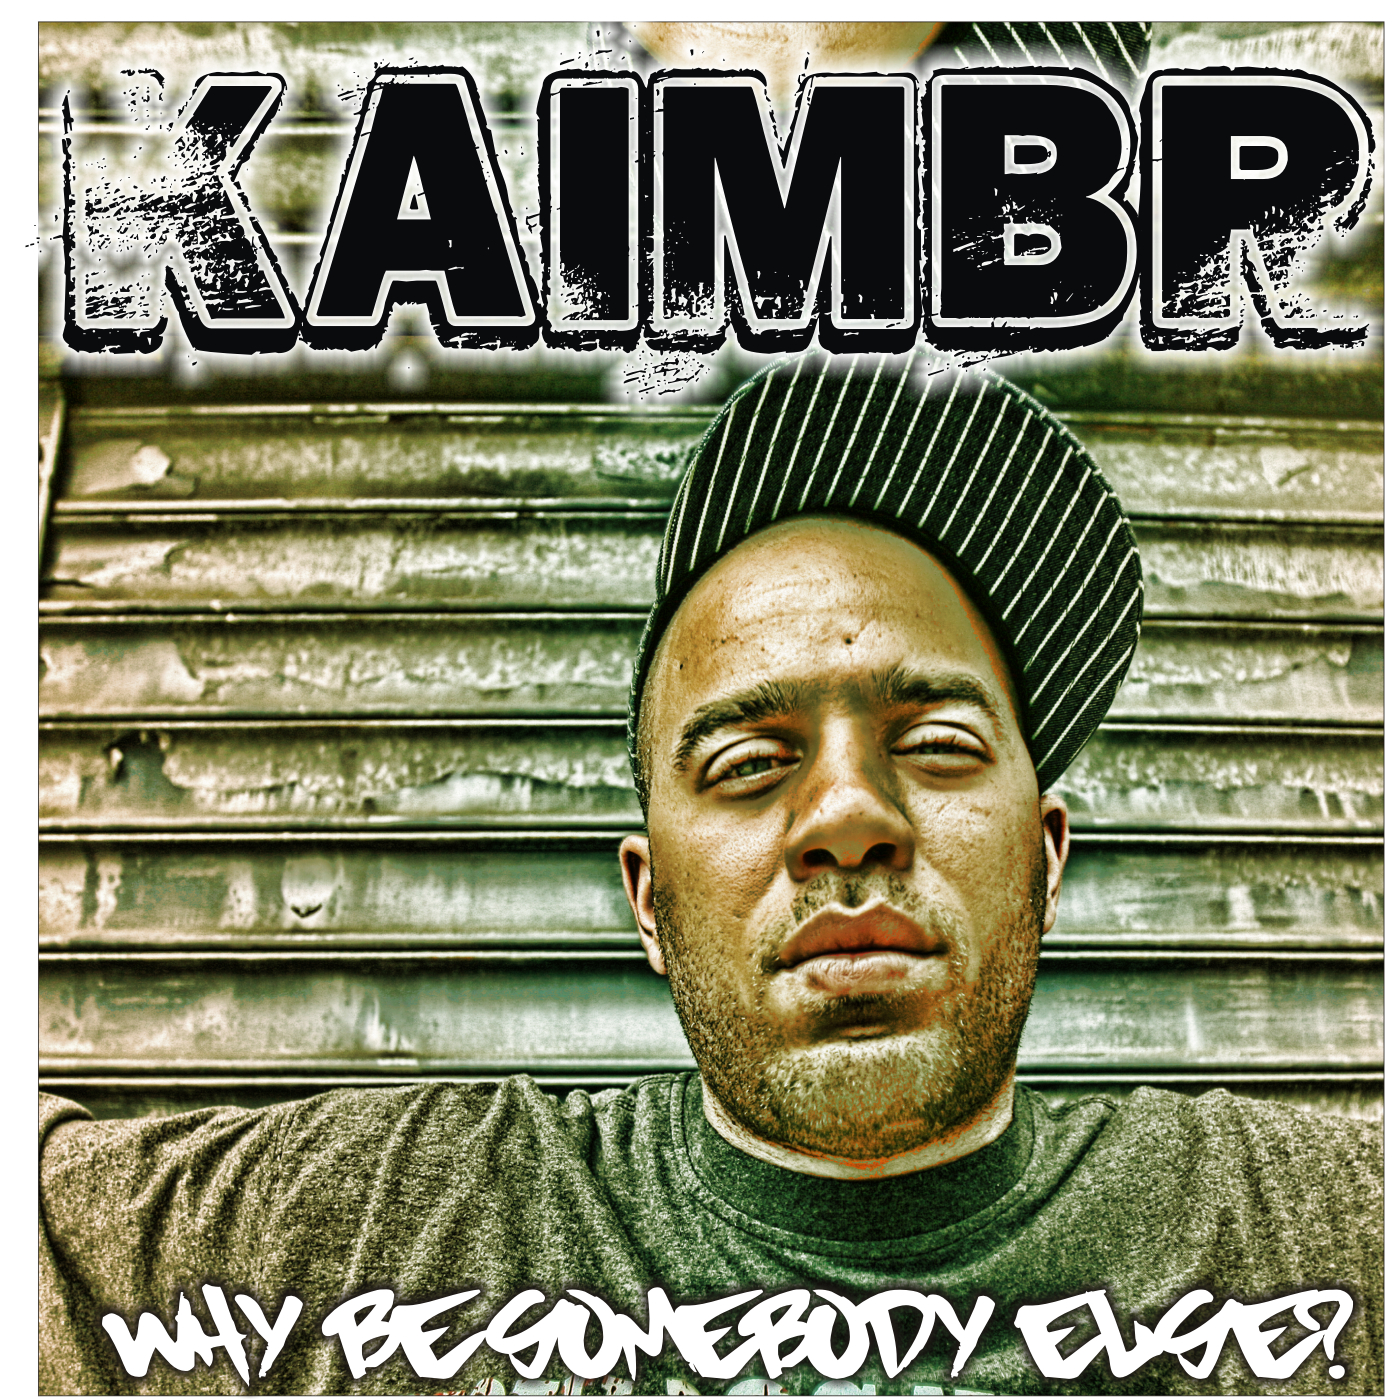 KAIMBR - WHY BE SOMEBODY ELSE (2007)